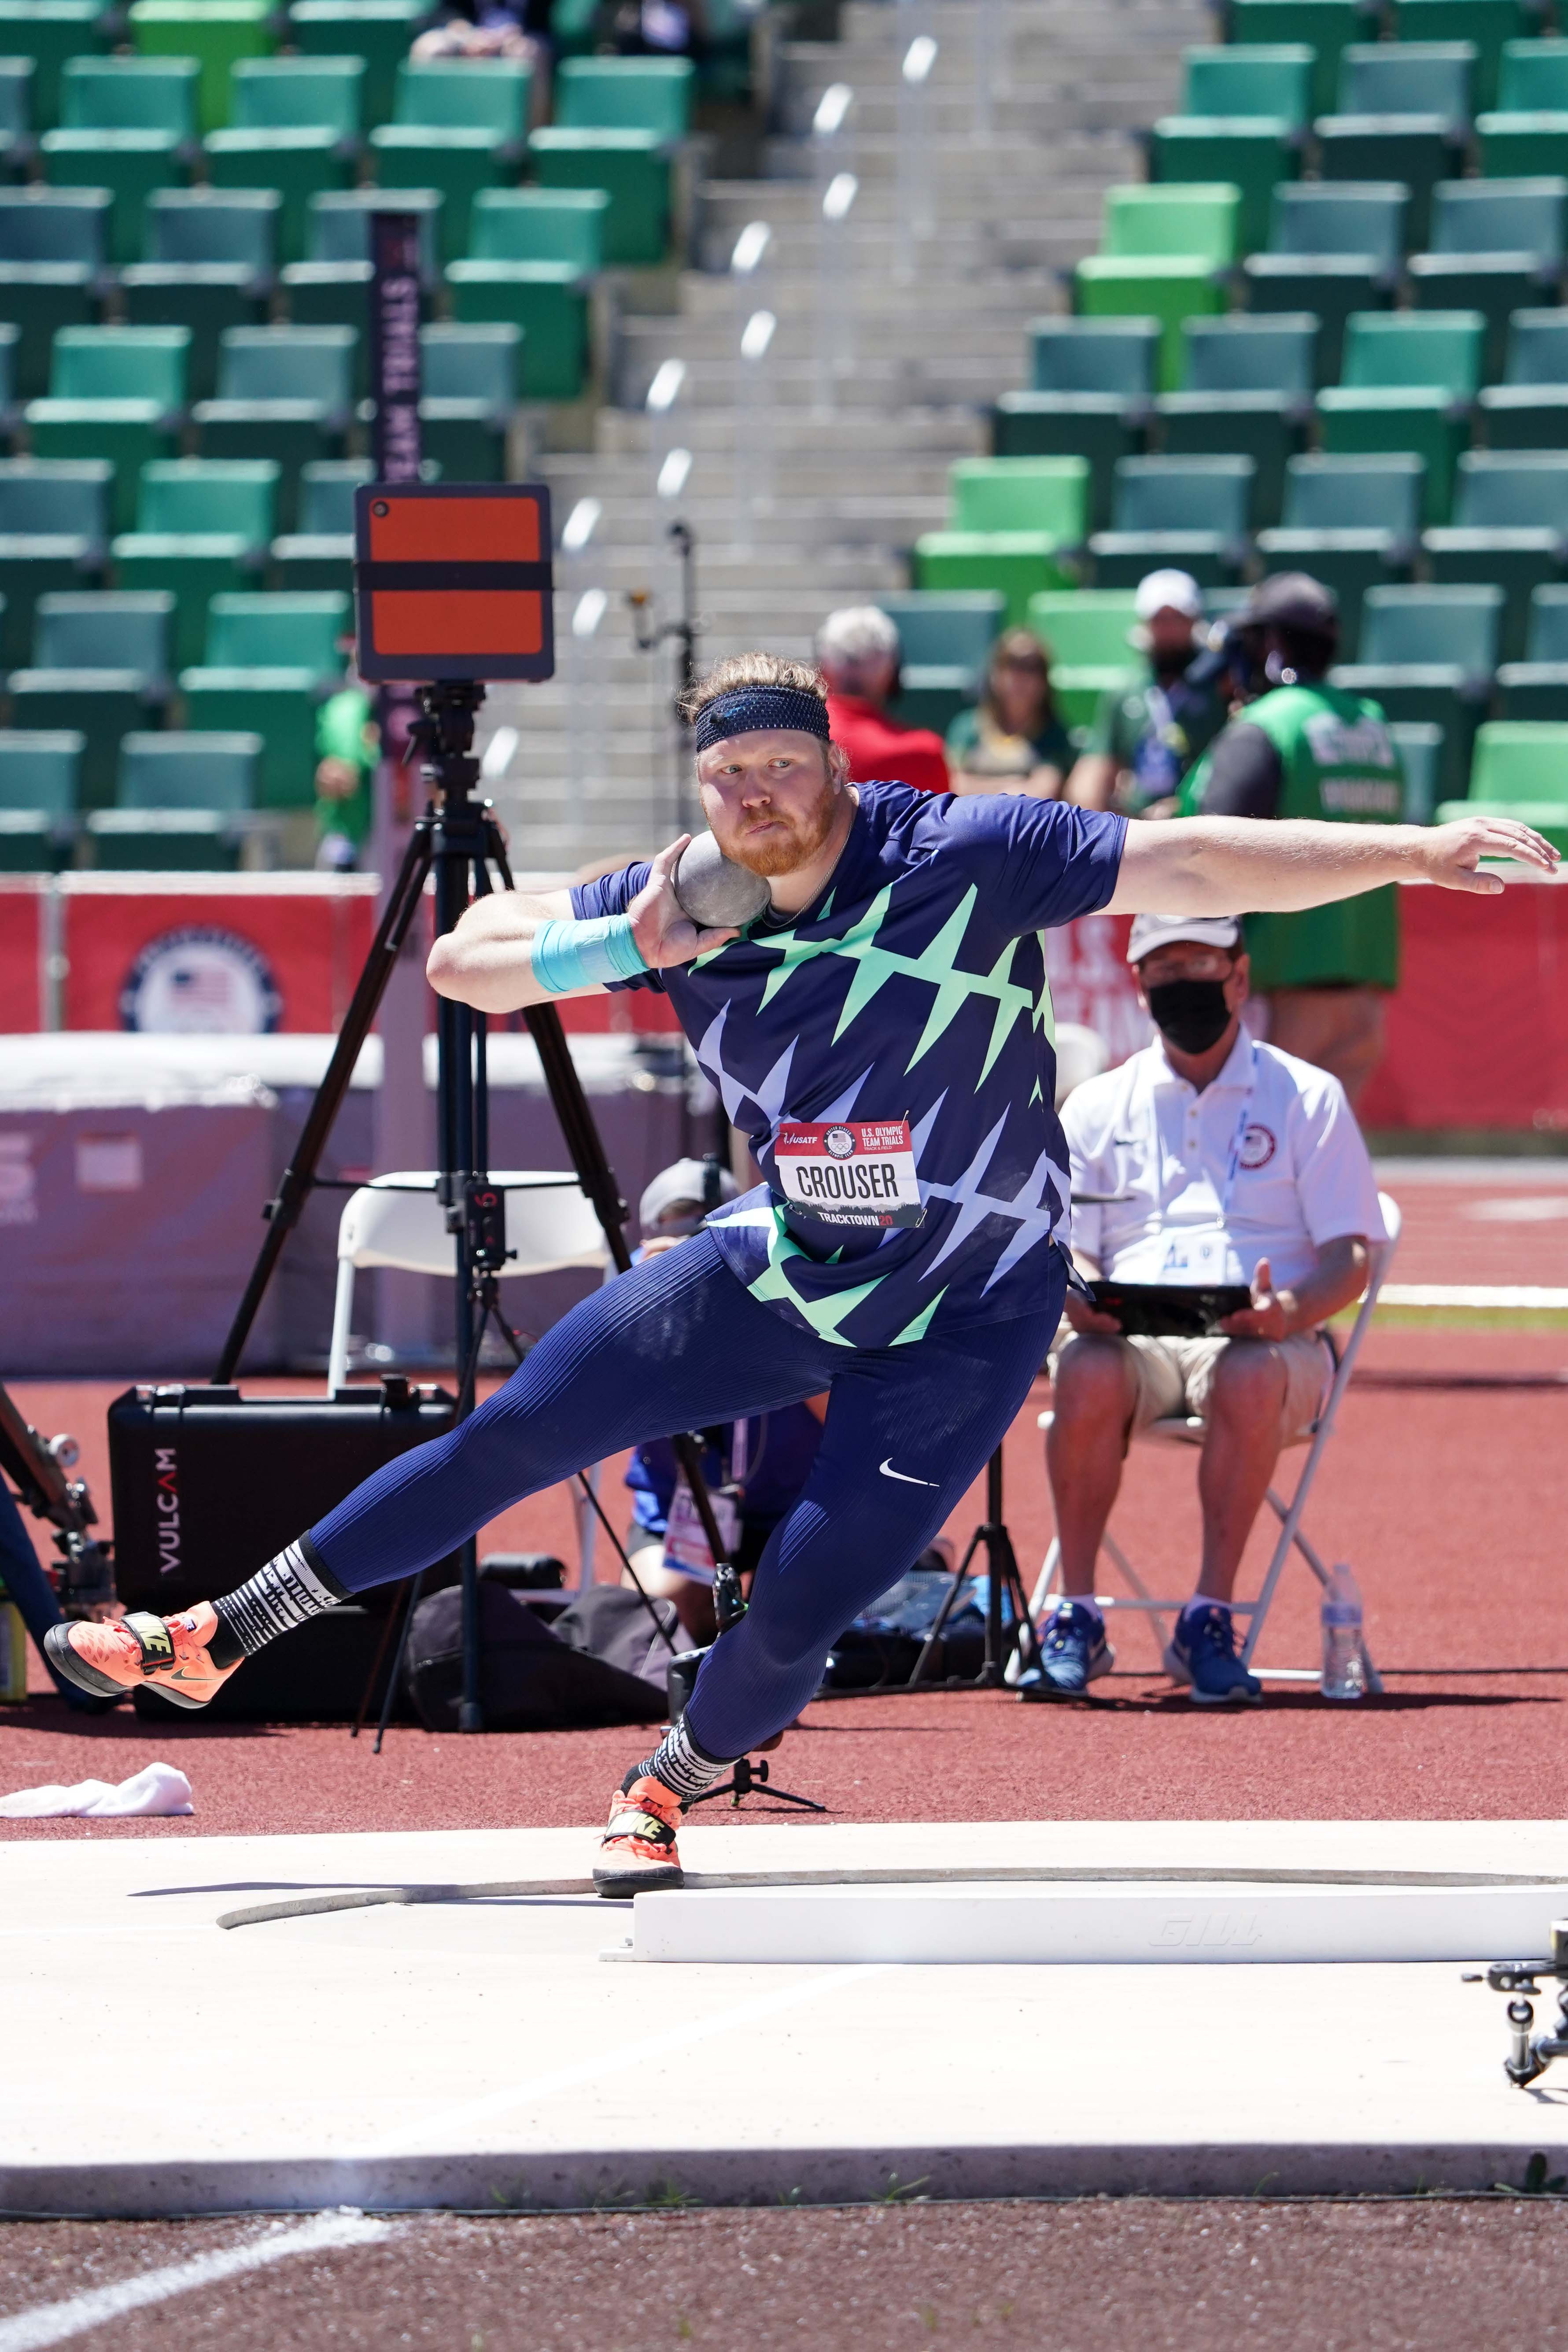 Jun 18, 2021; Eugene, OR, USA; Ryan Crouser throws a meet-record 75-2 (22.92M) for the top mark in the shot put qualifying  during the US Olympic Team Trials at Hayward Field. Mandatory Credit: Kirby Lee-USA TODAY Sports